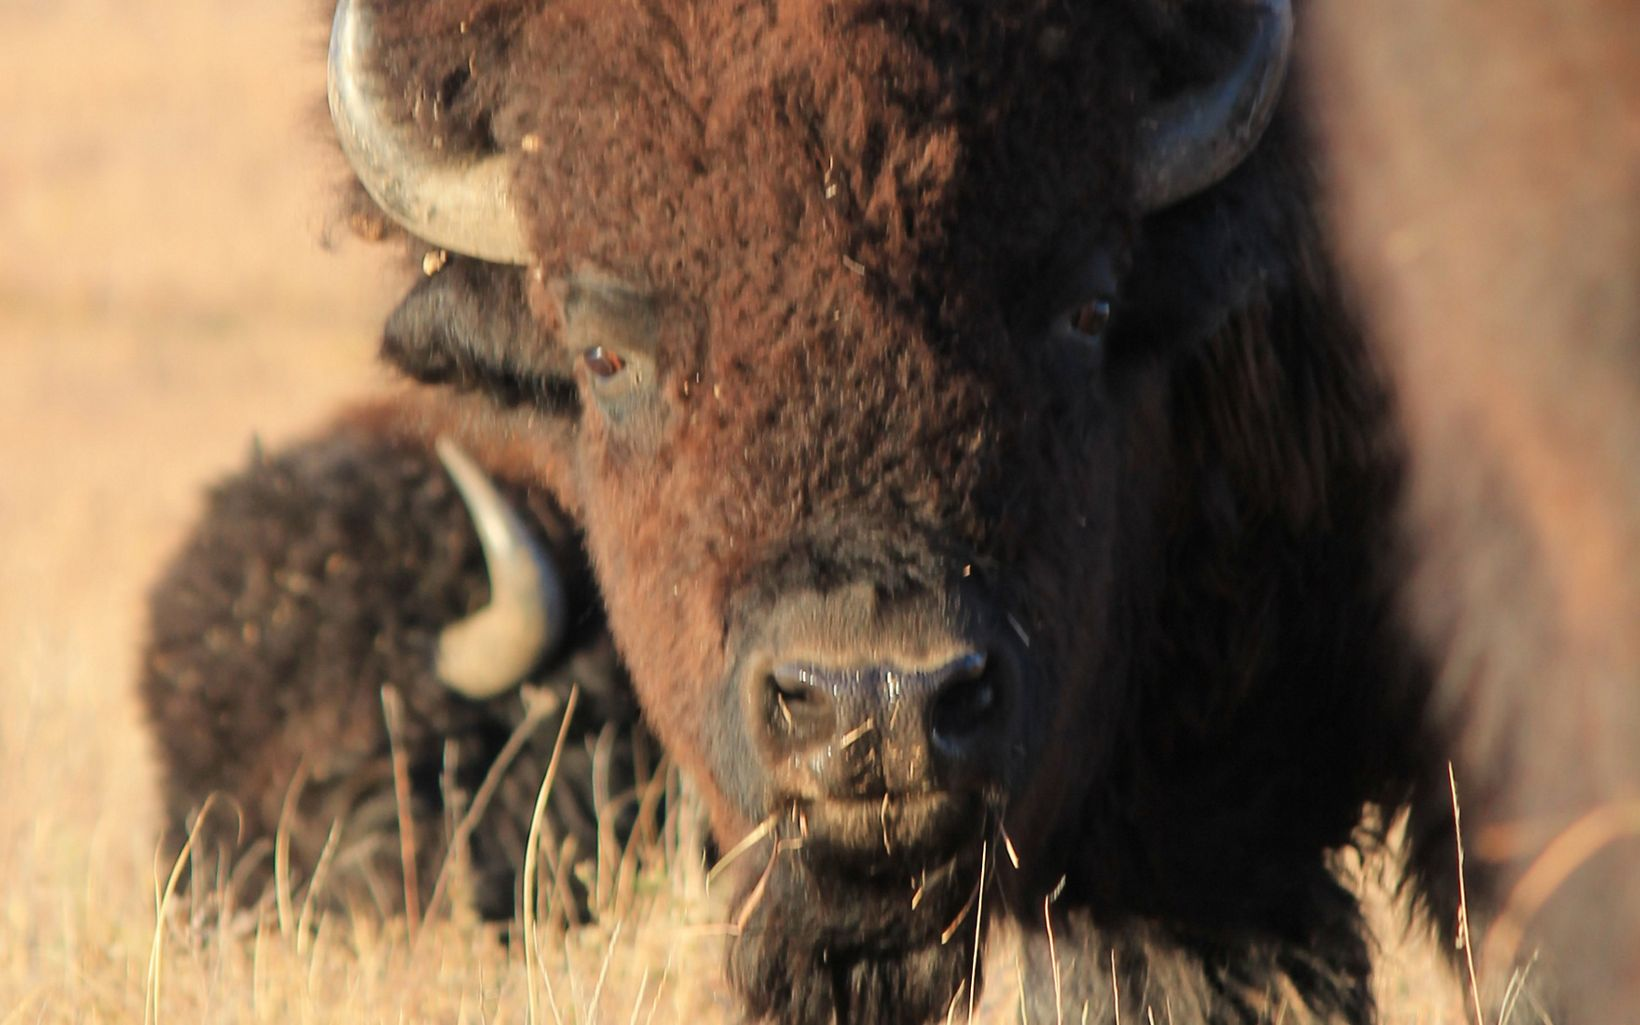 Close up of bison face.